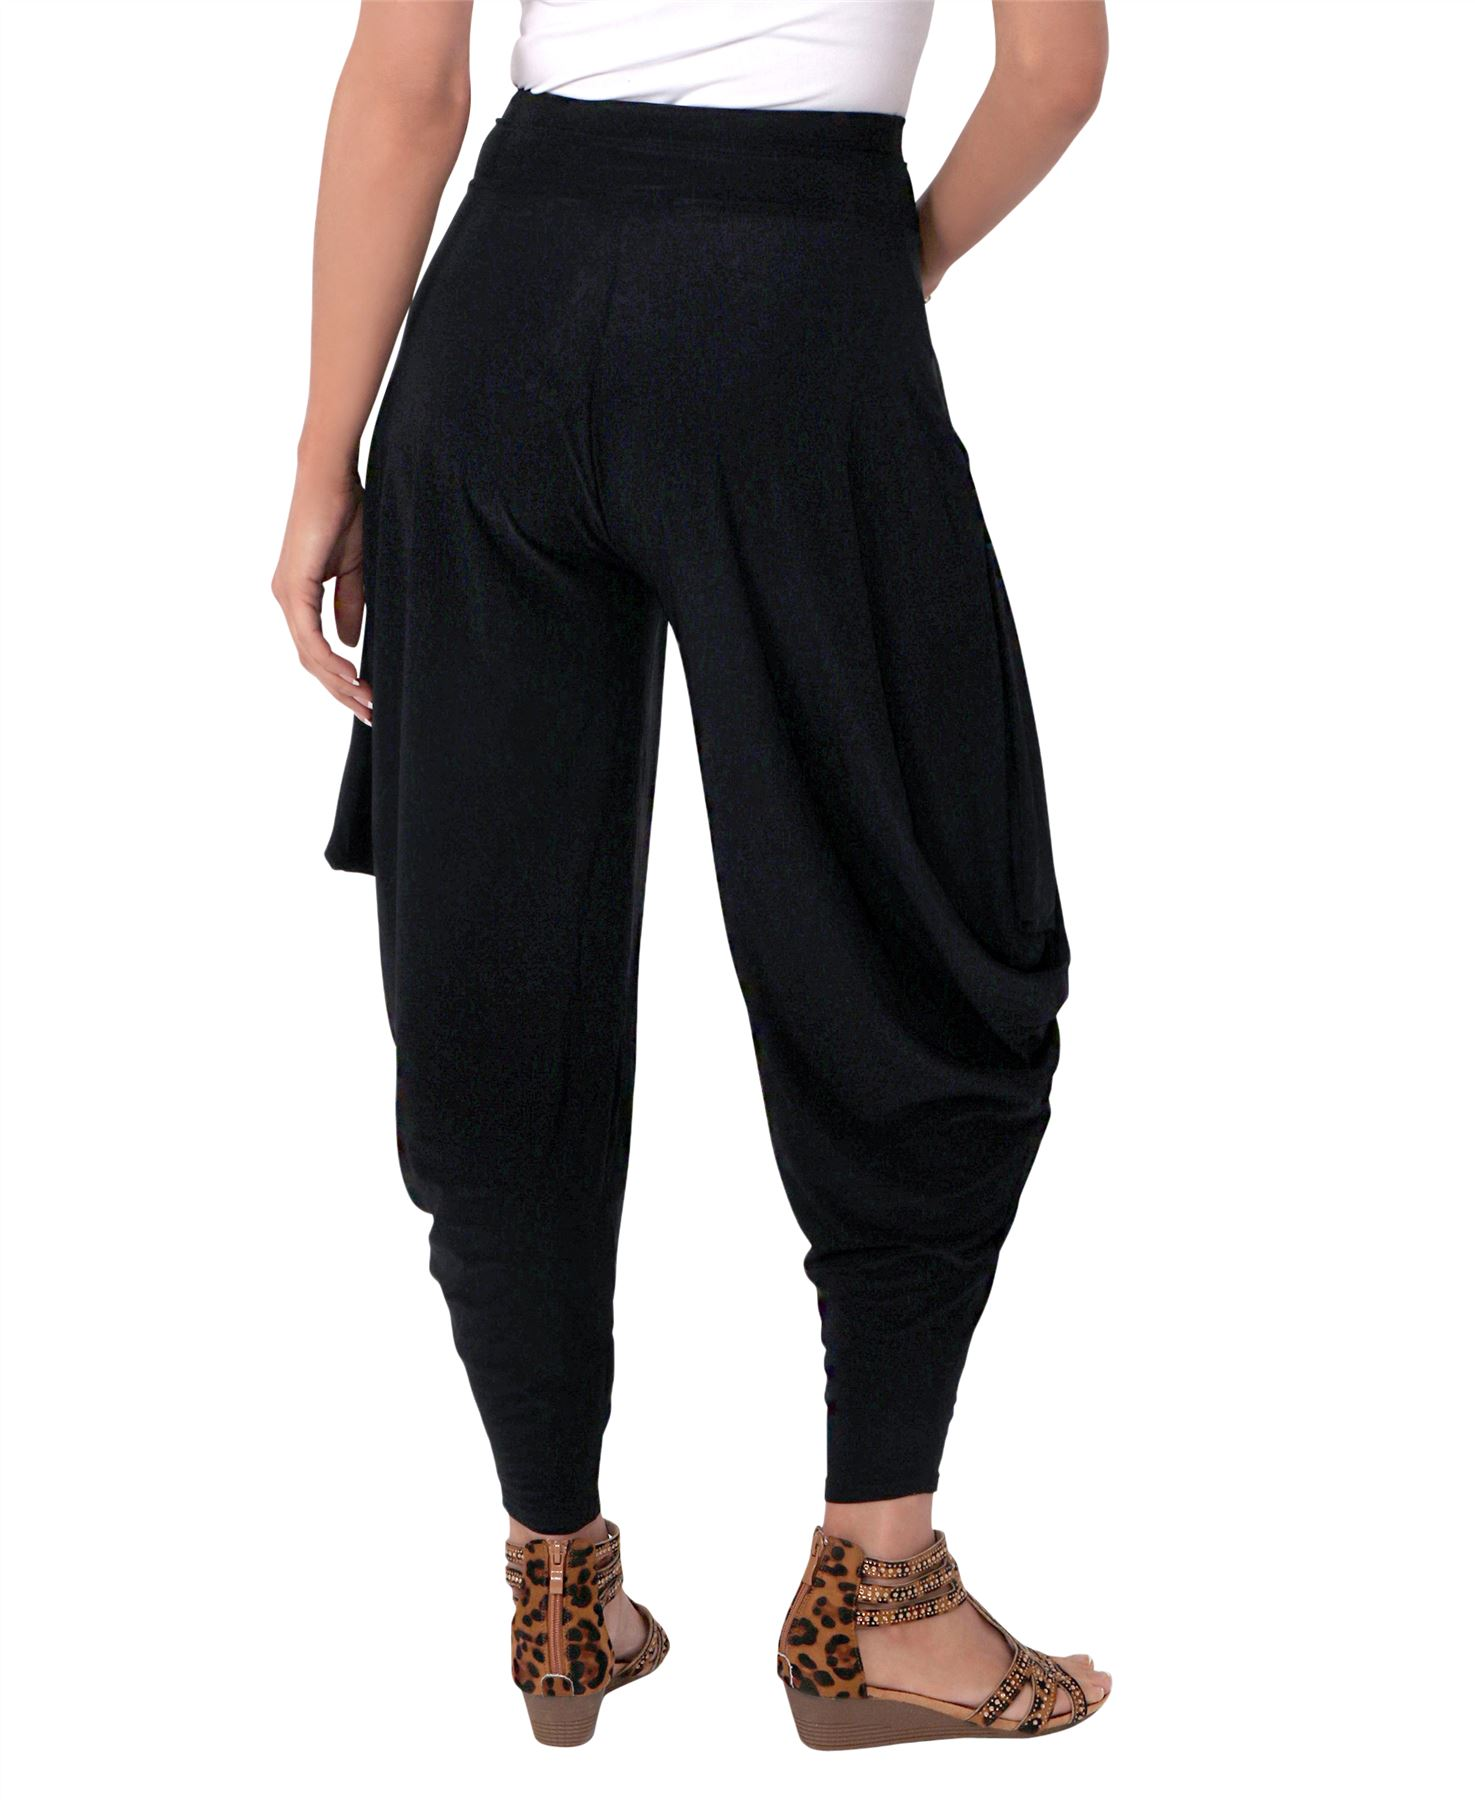 Details about Womens Harem Pants Ali Baba Leggings Boho Trousers Genie Wide Flared Summer